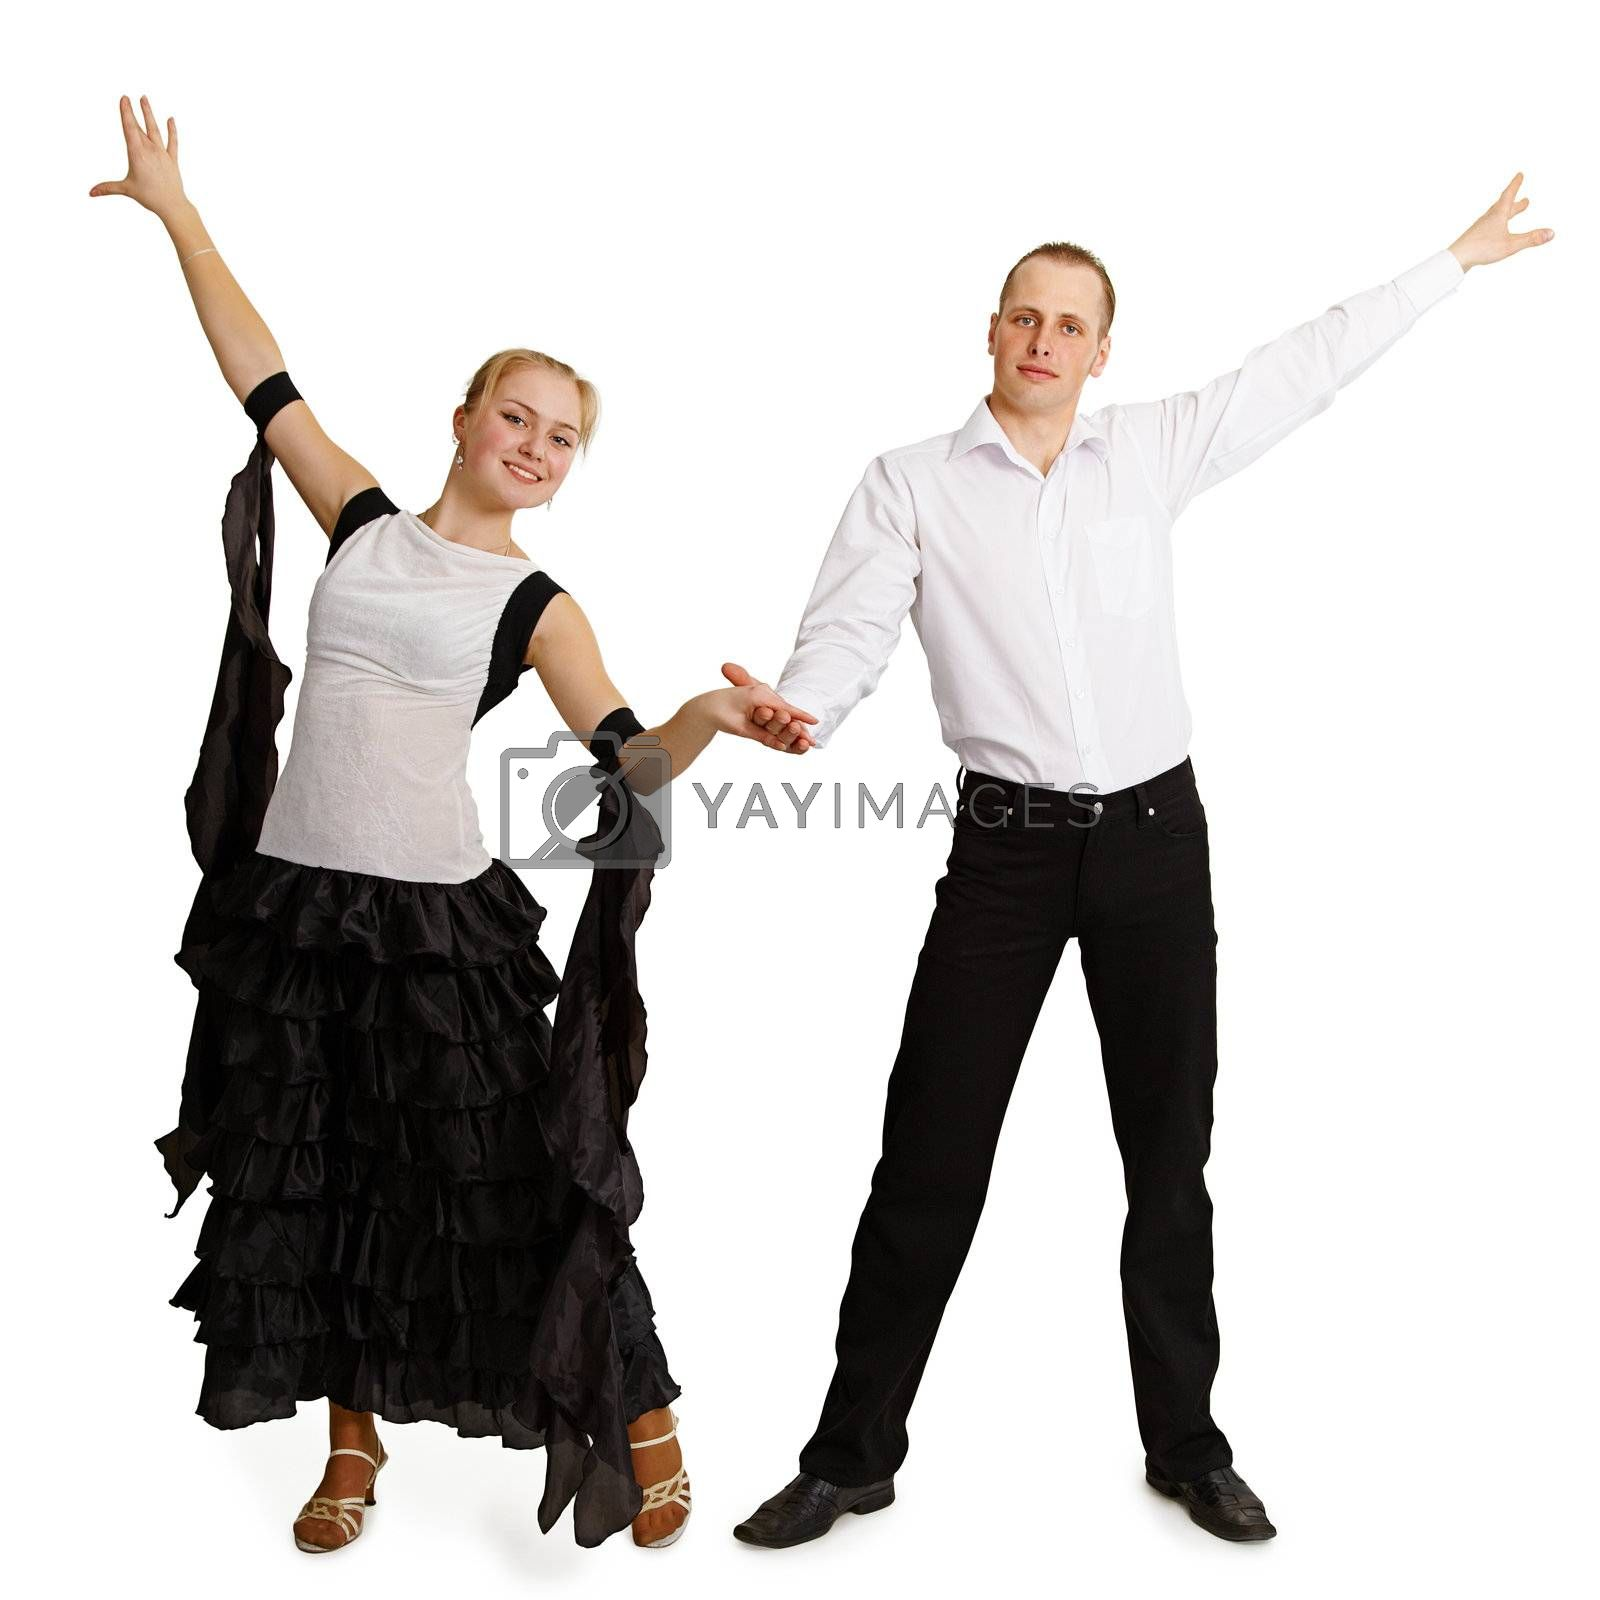 A pair of professional dancers finished dancing isolated on white background